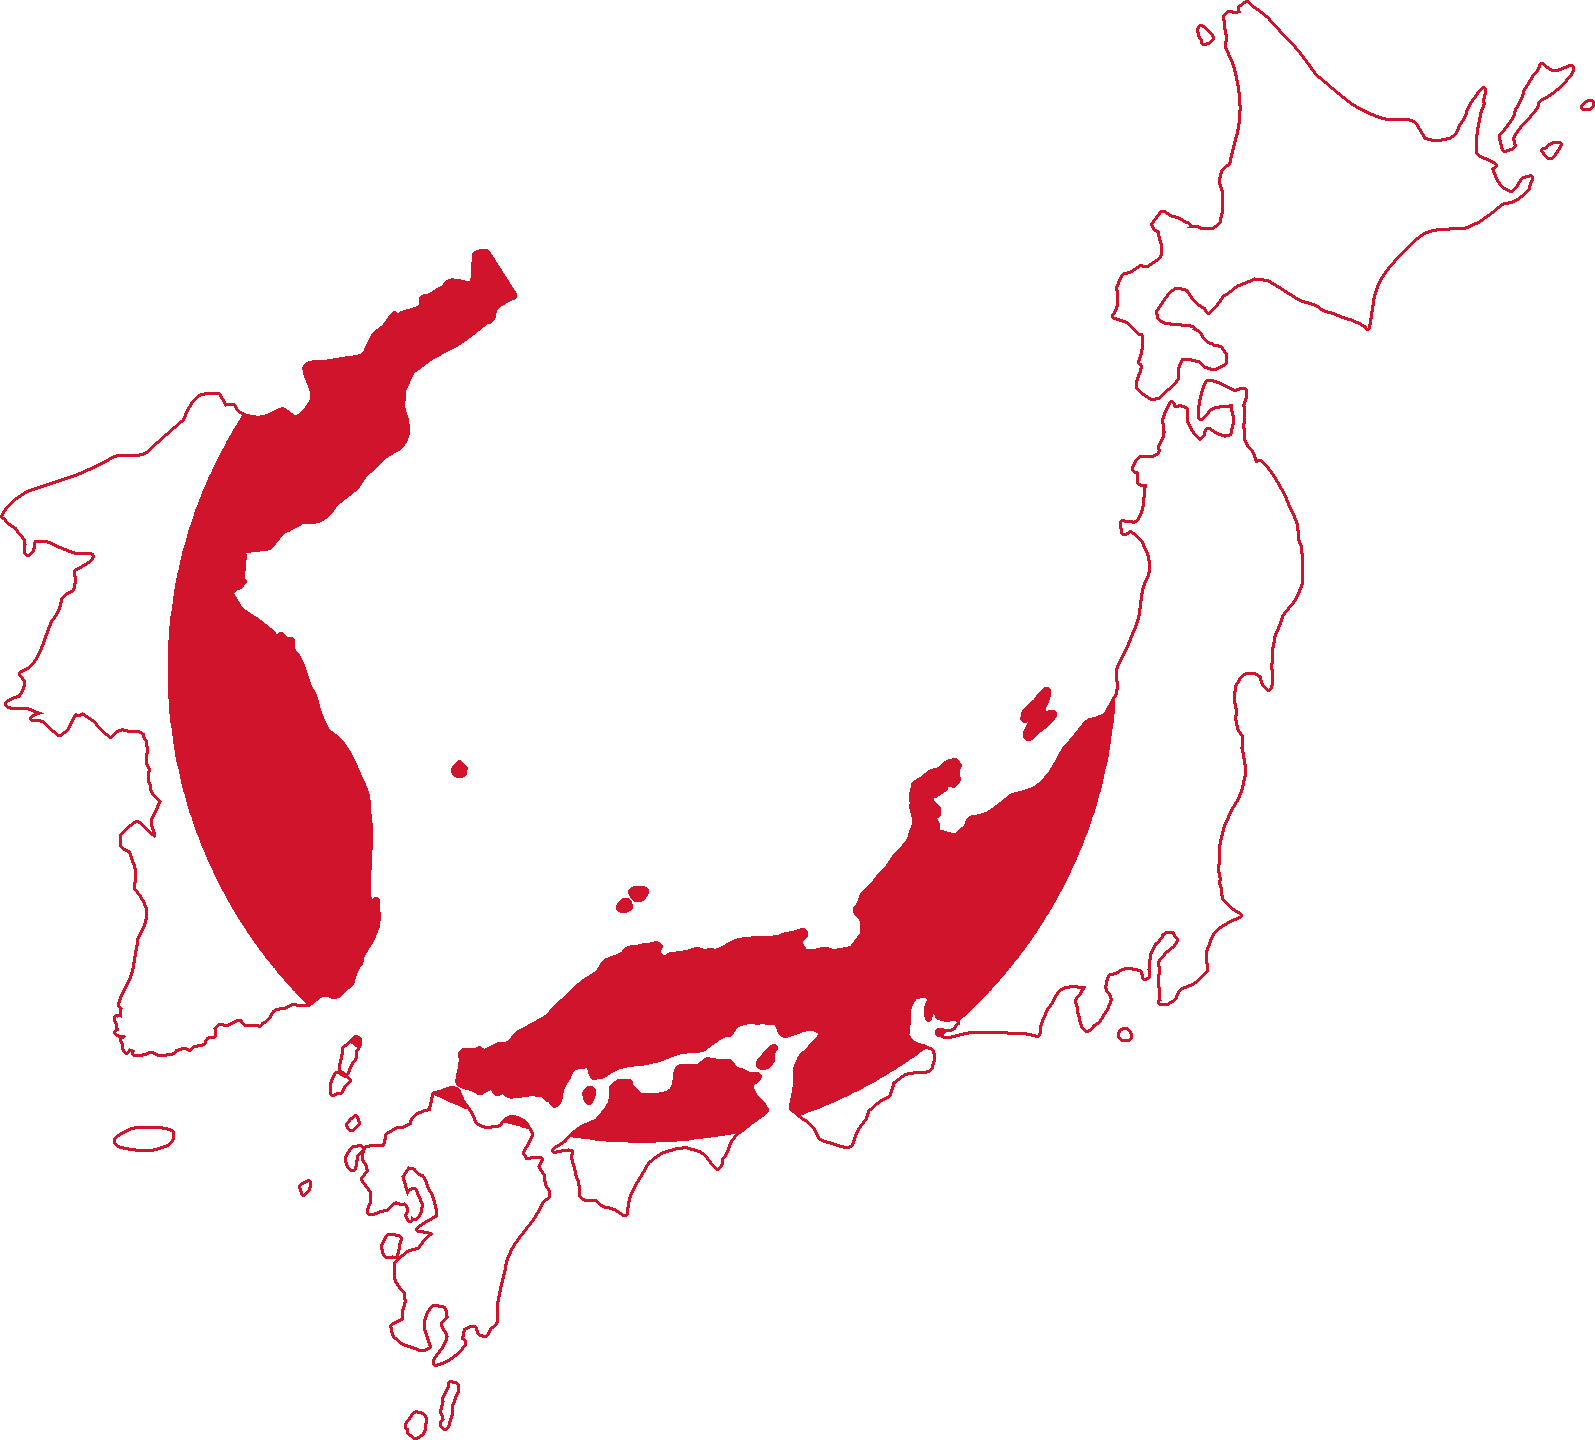 FileFlag Map Of Japan And Korea Png Wikimedia Commons - Japan map korea